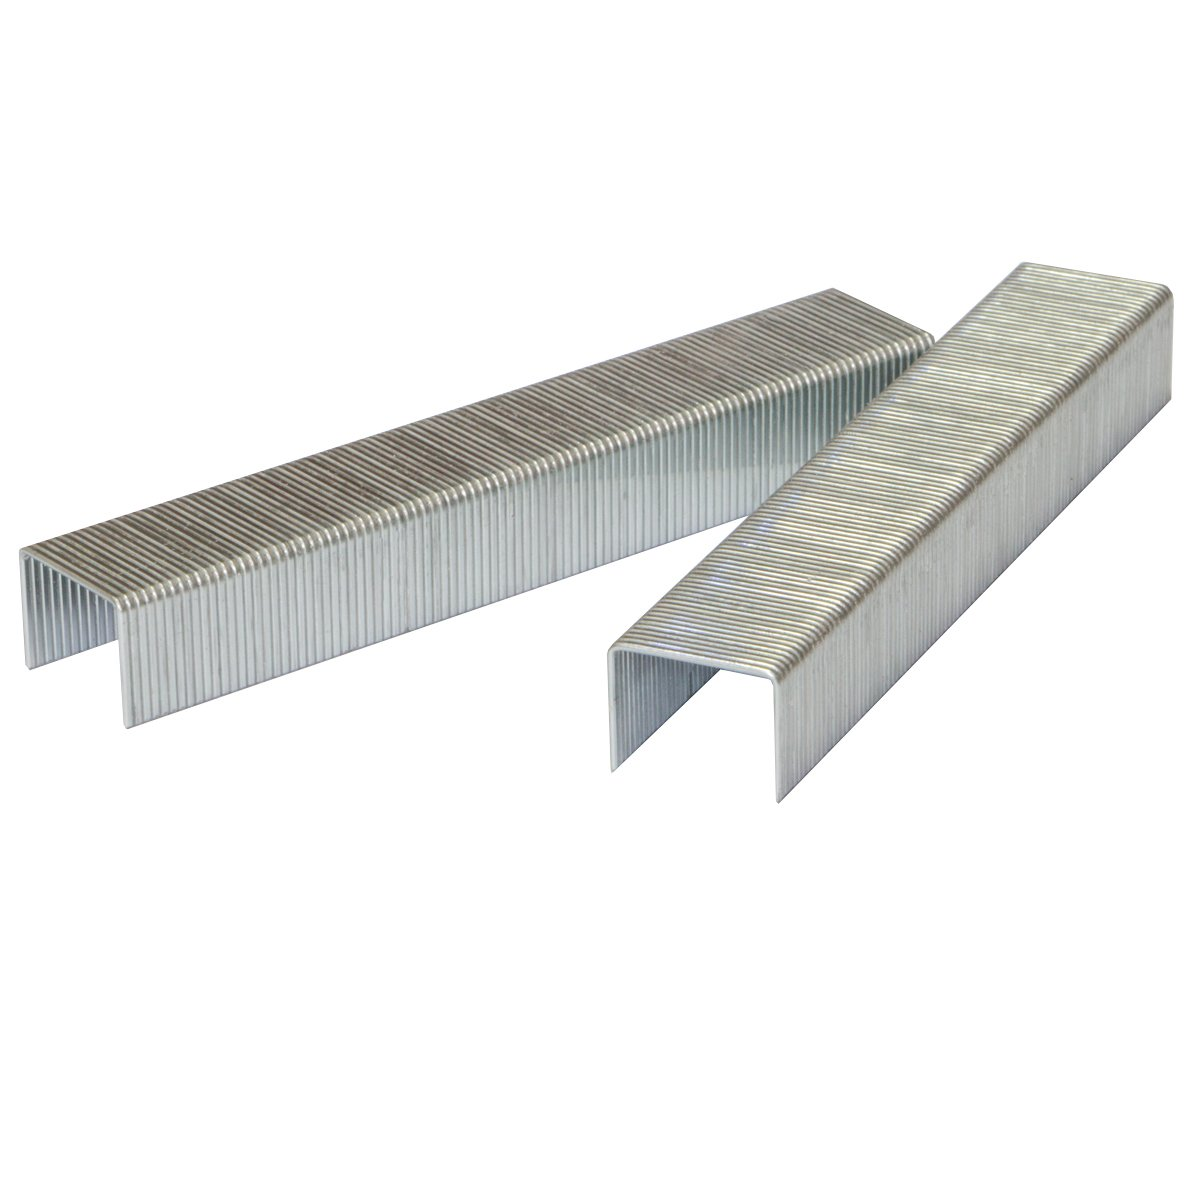 Heavy Duty Standard Staples 23/10 3/8' Length Free Office 1000pcs/box (10) by Free Office (Image #6)